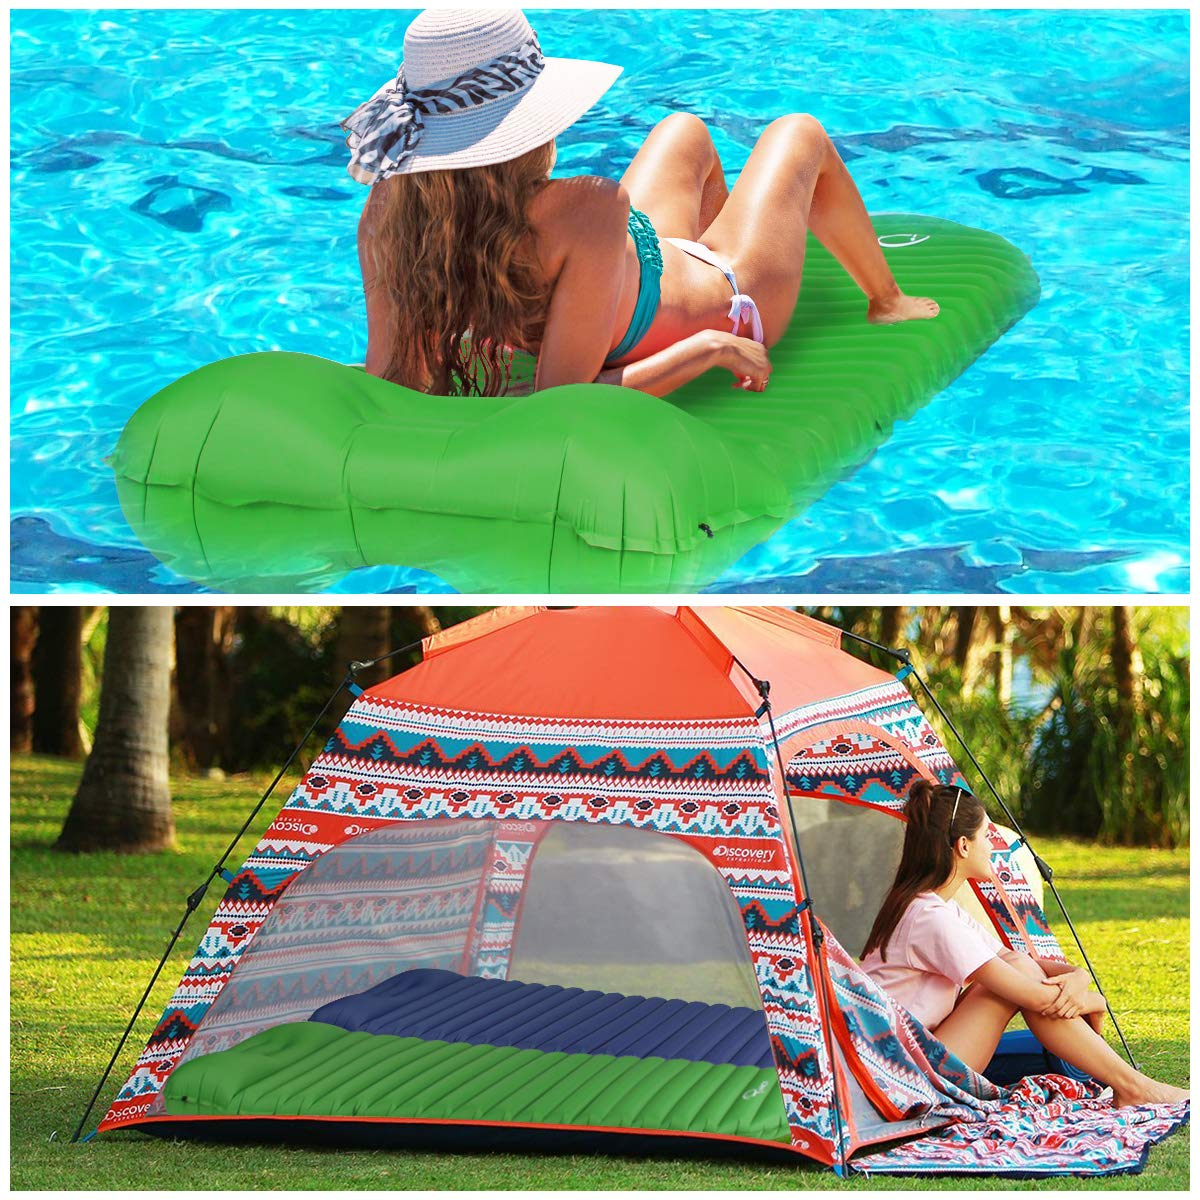 RYACO R997 Matelas de Camping Gonflable